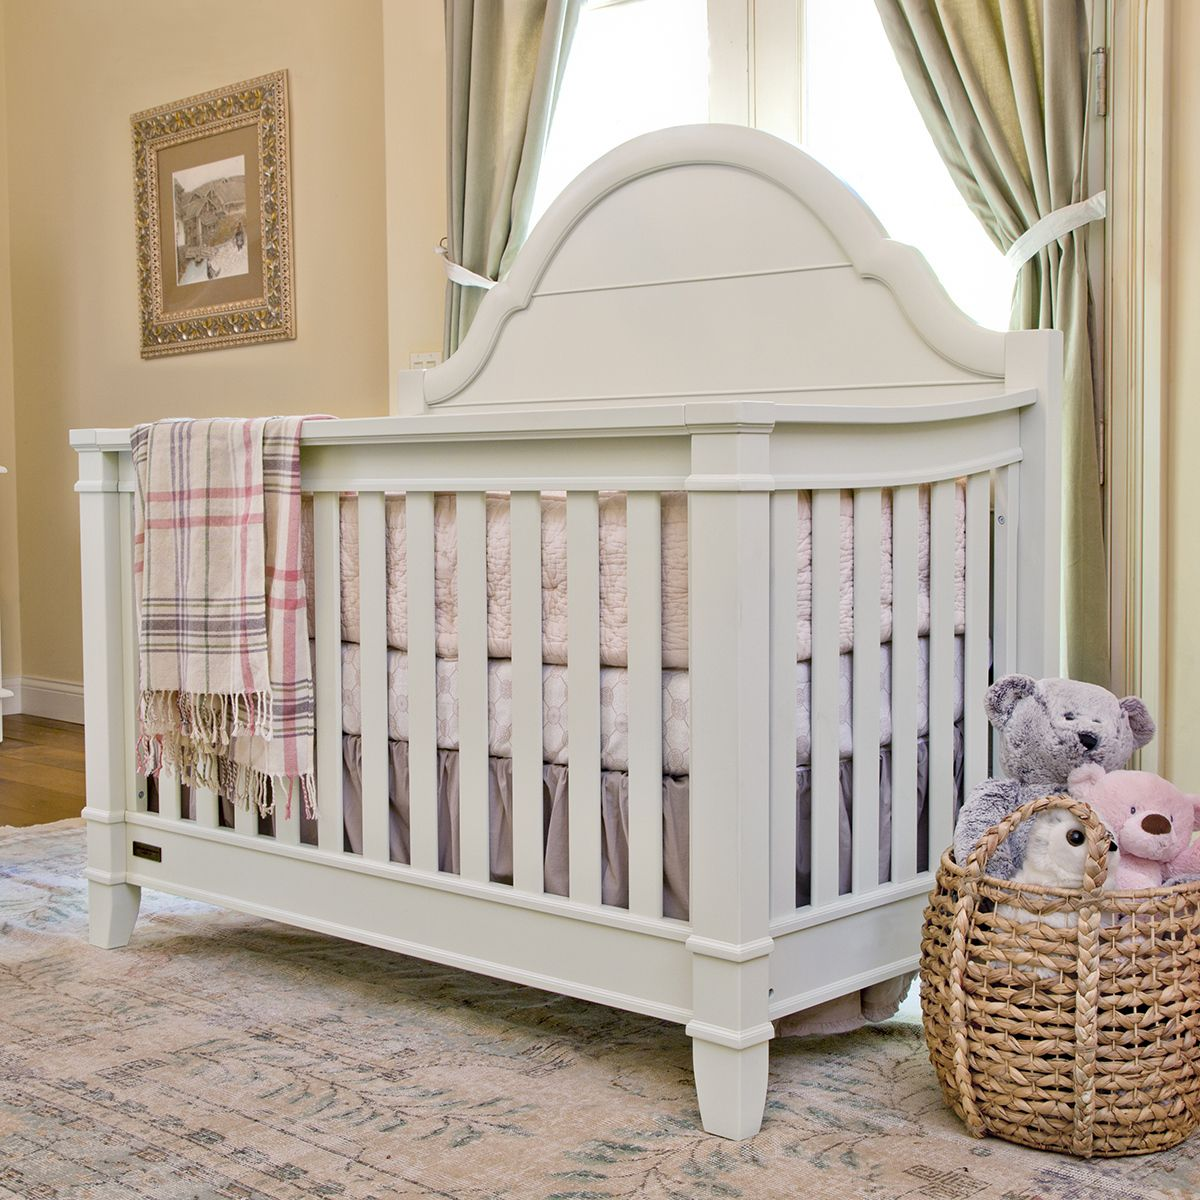 Genial Simply Baby Furniture Reviews   Best Interior Paint Brand Check More At  Http://www.chulaniphotography.com/simply Baby Furniture Reviews/